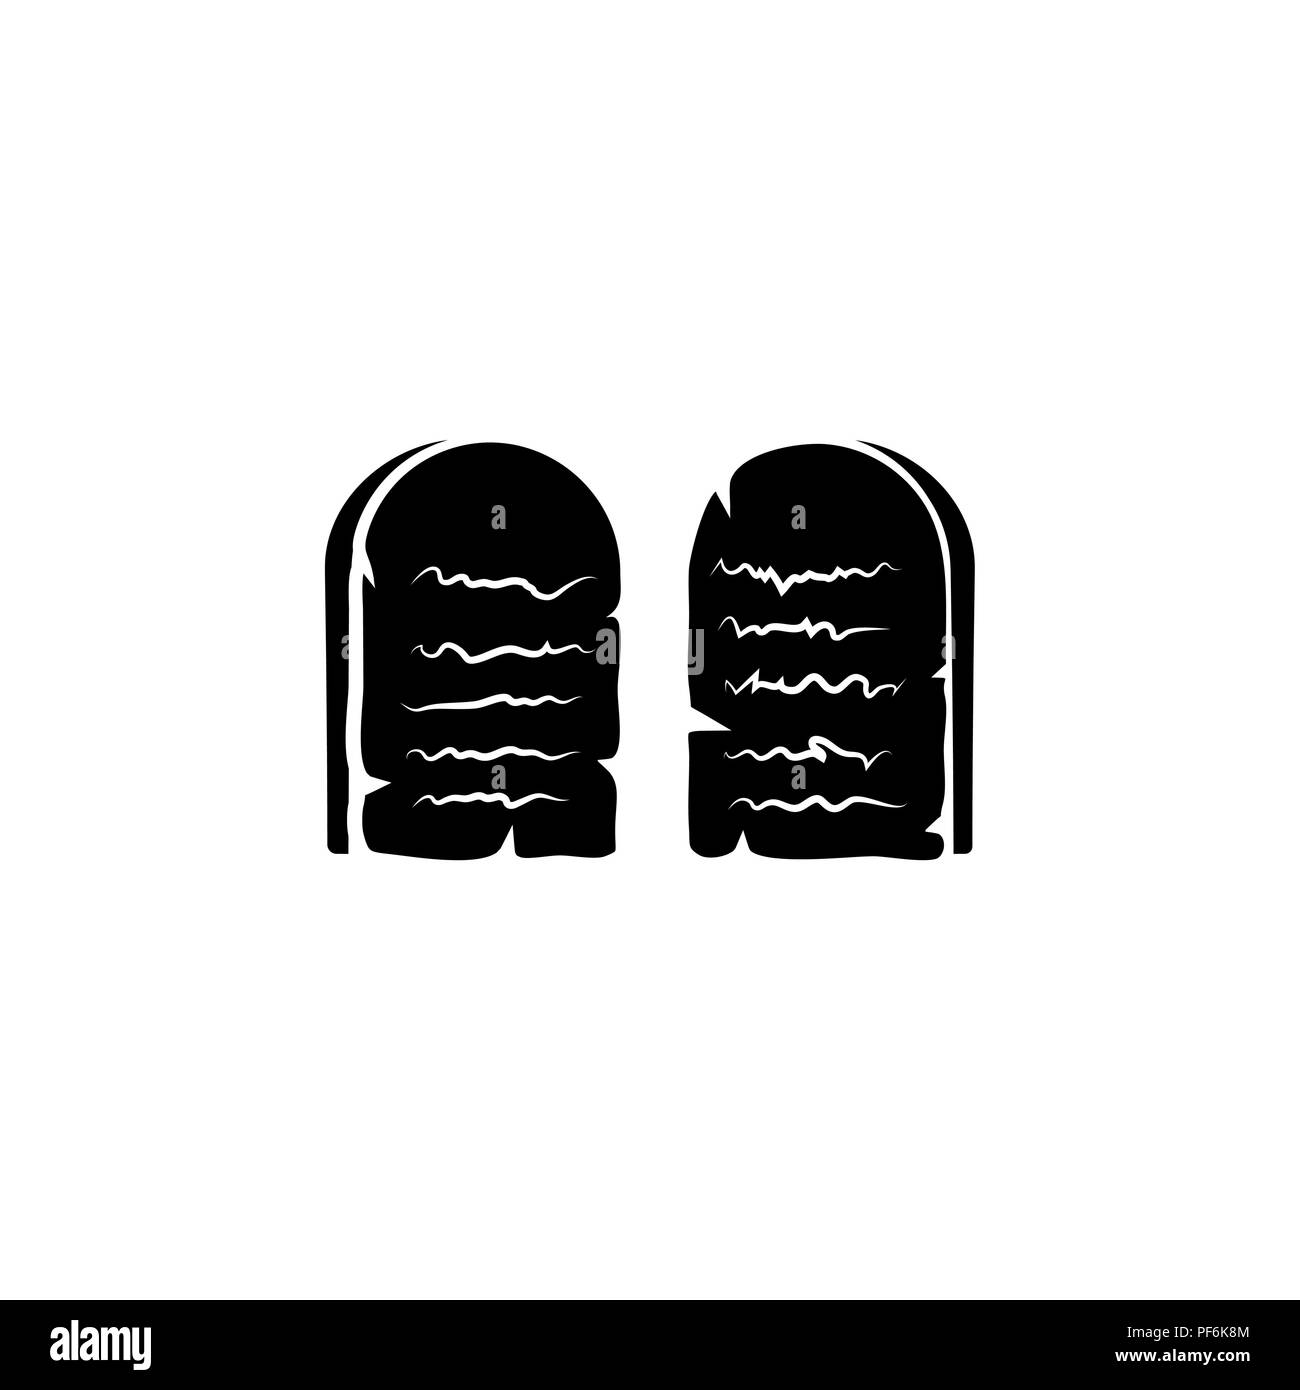 Stone Tablets. Ten Commandments black on white background - Stock Image